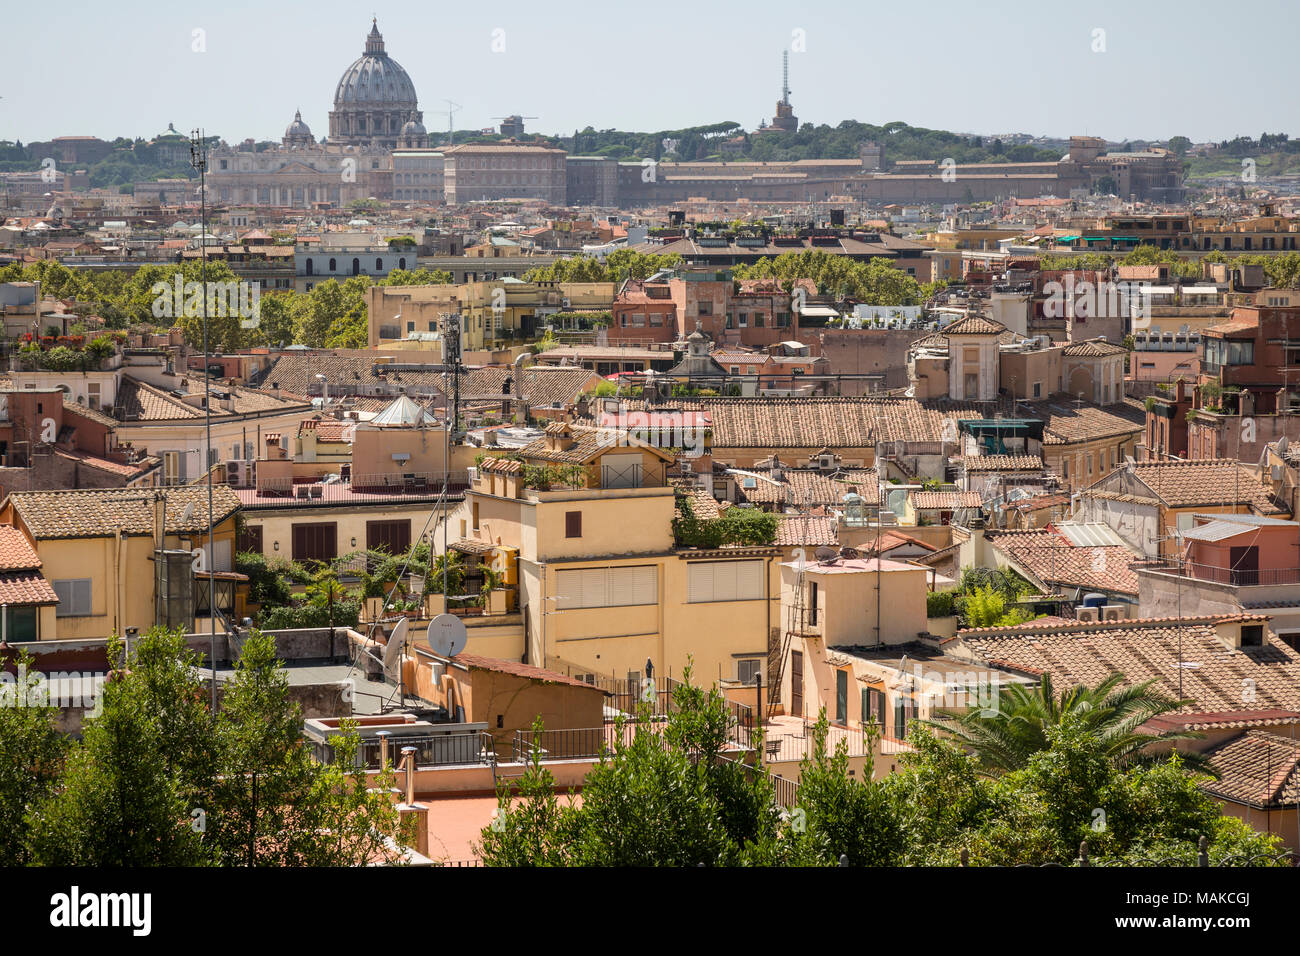 View from Terrazza del Pincio looking across the city skyline ...